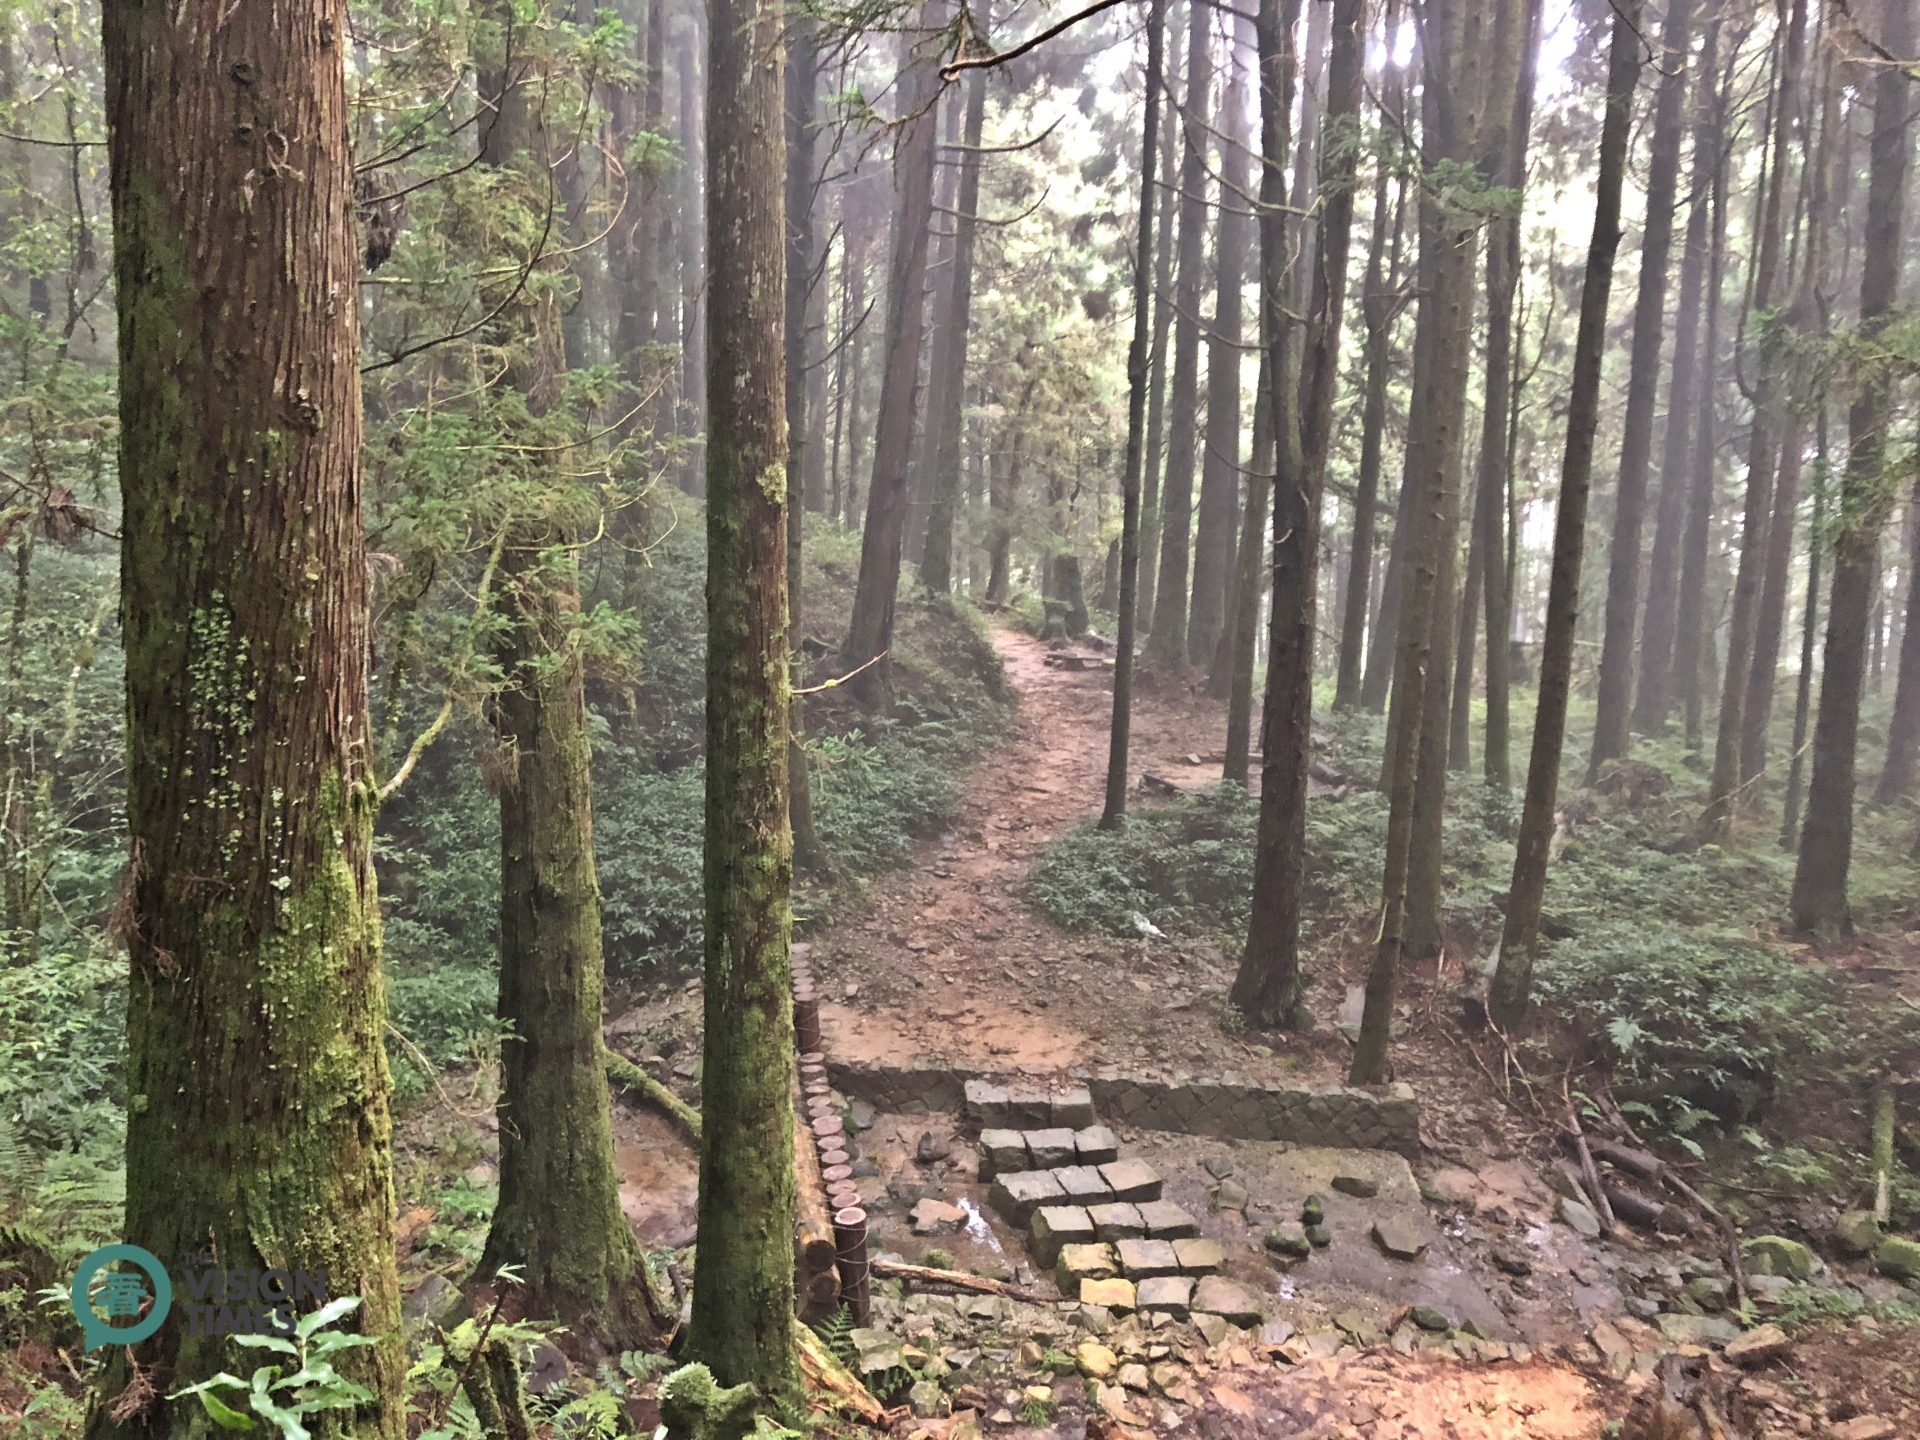 Hikers can get a sense of the true beauty of Alishan National Scenic Area. (Image: Julia Fu / Vision Times)